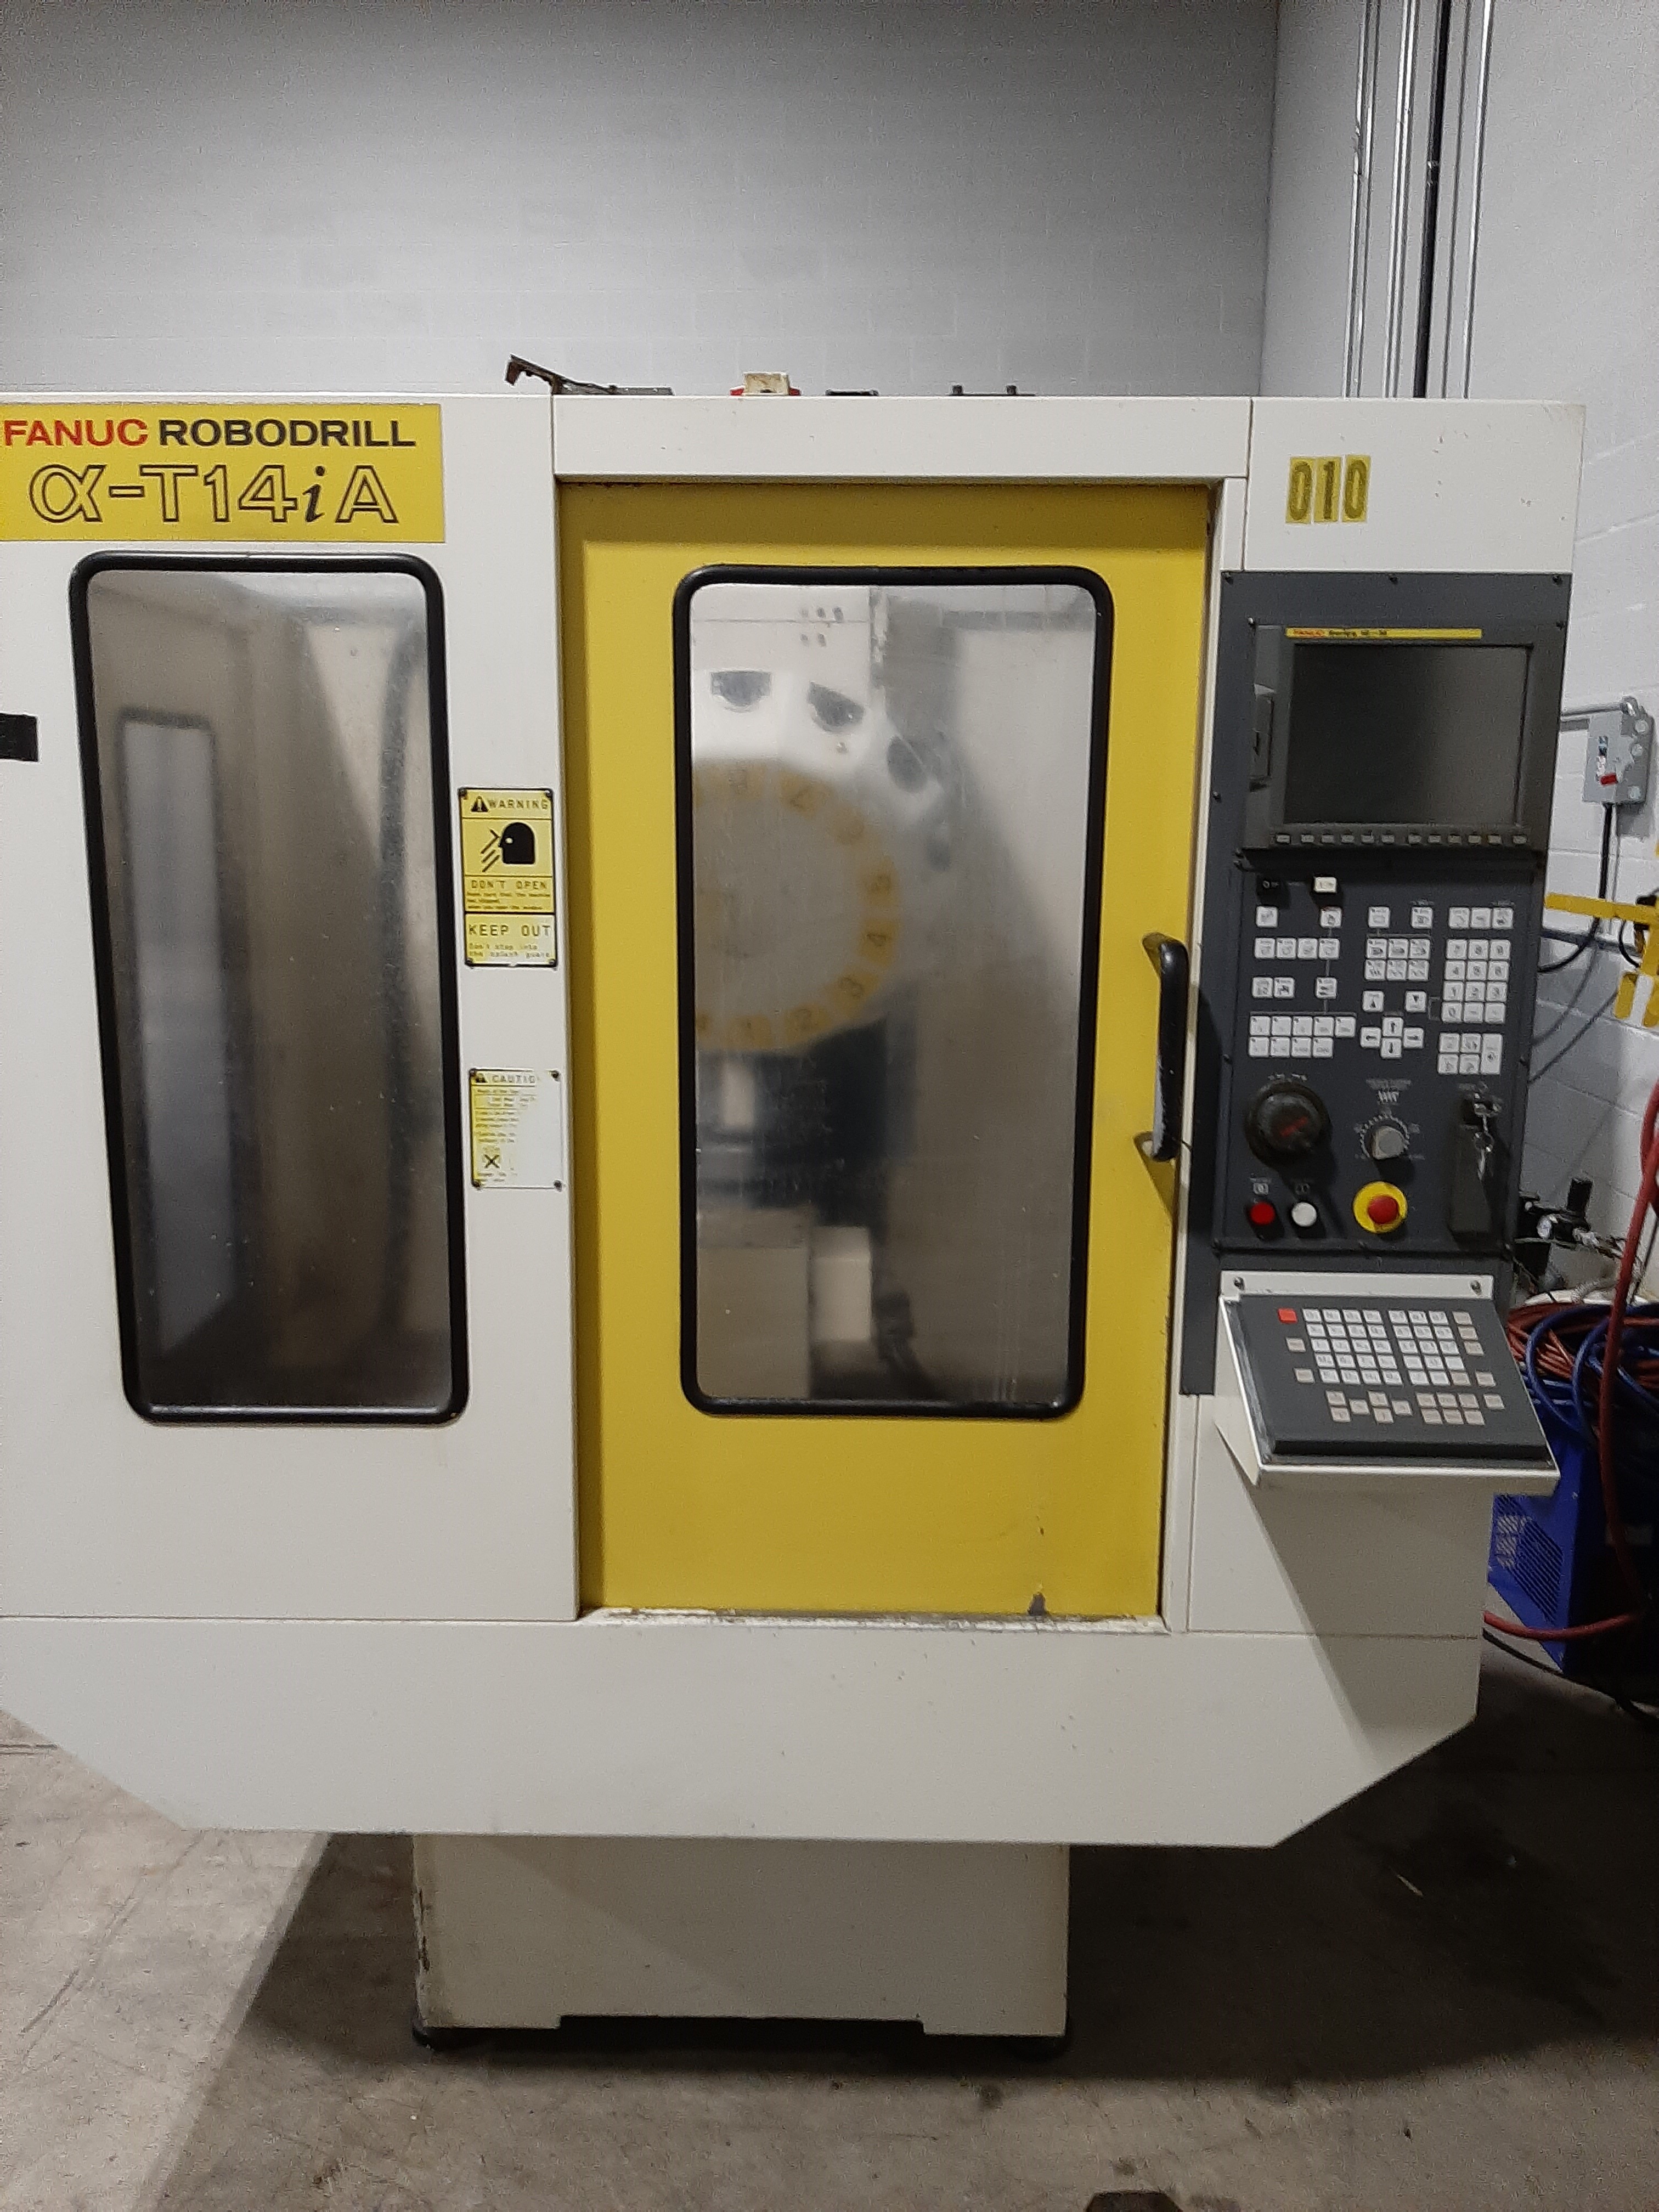 """1997 Fanuc Robodrill Alpha T14i A;  Fanuc 16i M Control; X Axis, 19.7""""; Y Axis  14.9""""; Z Axis 11.8"""";  Table Size: 25.6"""" x 14.9""""; BT 30; 14 Tool ATC; 80-8,000 RPM; 7.5 HP;  Tsudakoma RN150 R 4th Axis Rotary Table,(Needs A Axis Servo Drive)"""